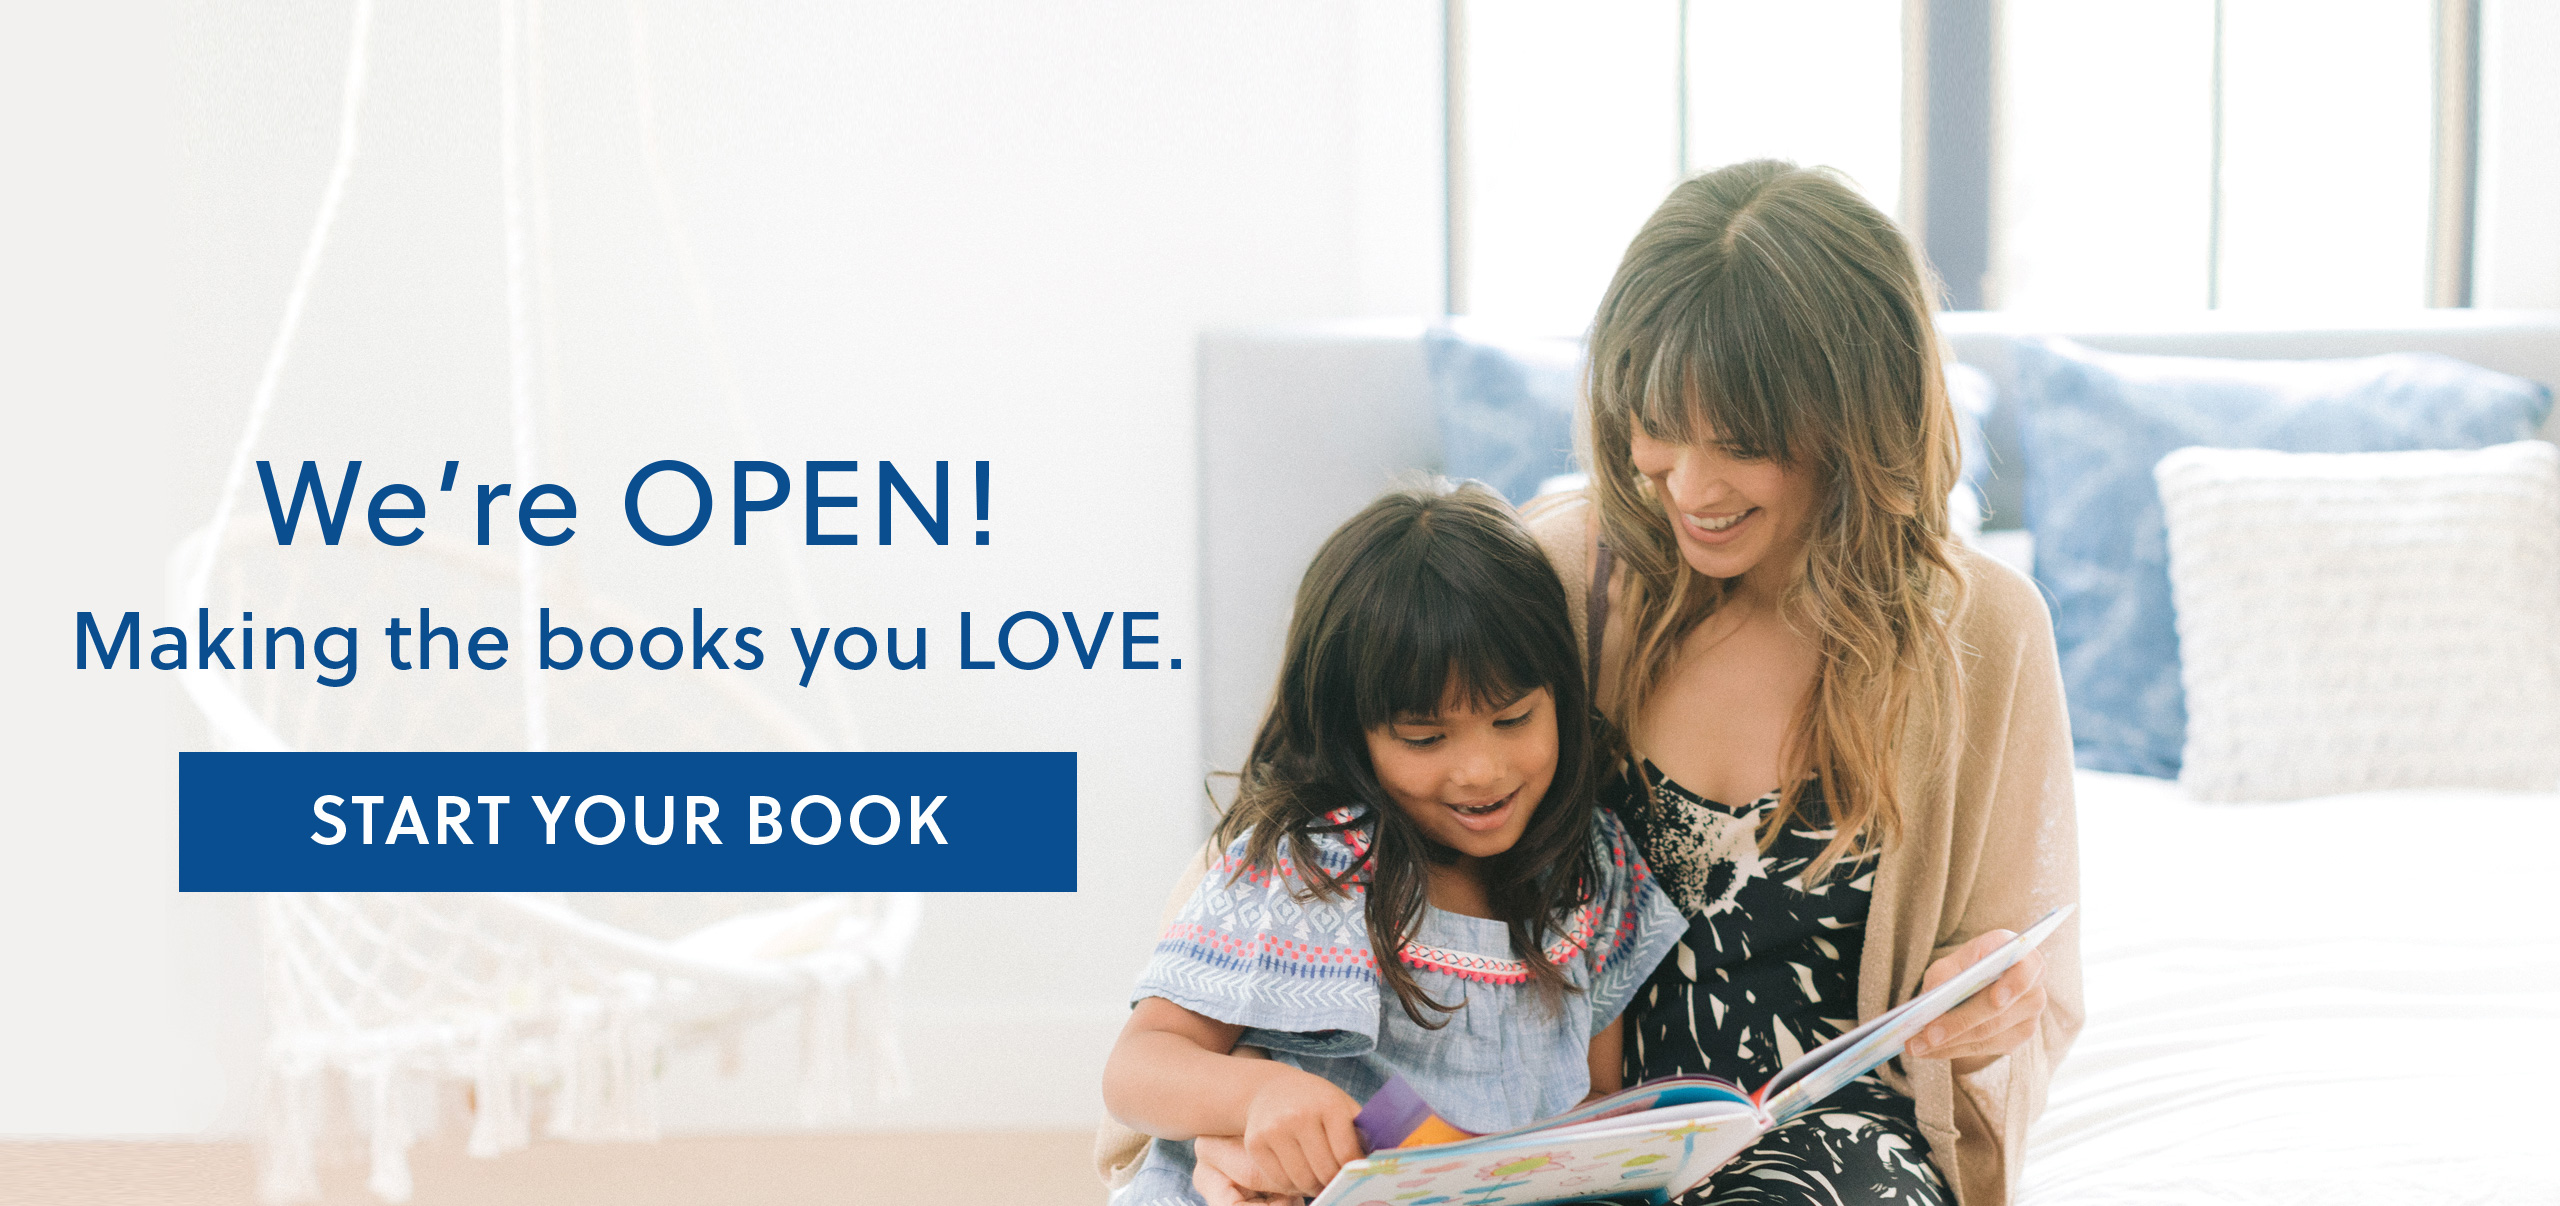 We're OPEN! Making the books you LOVE. START YOUR BOOK